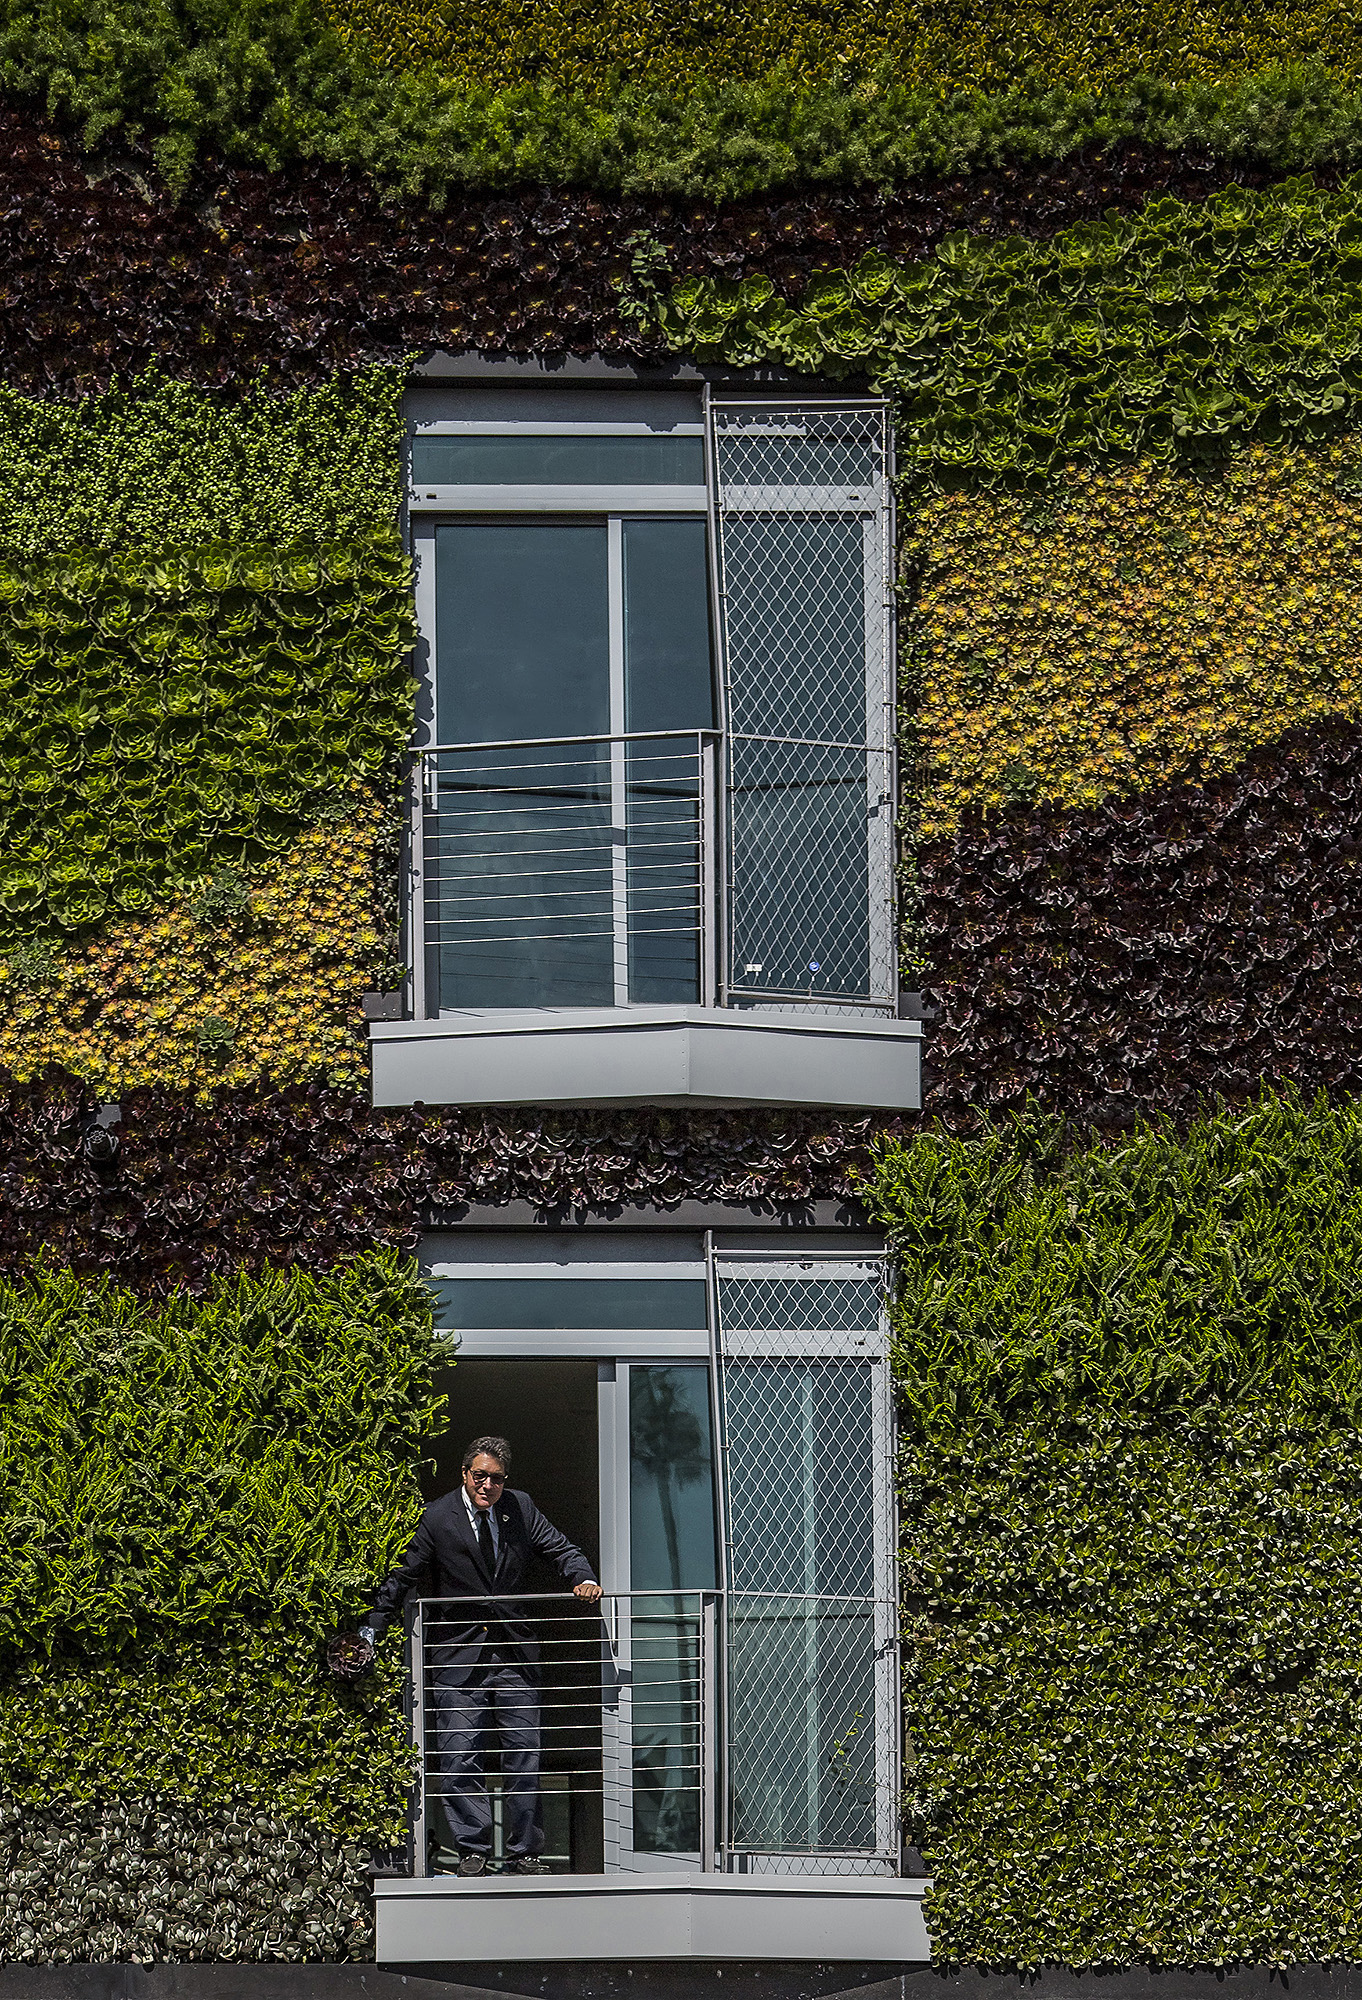 man on a balcony surrounded by greenery